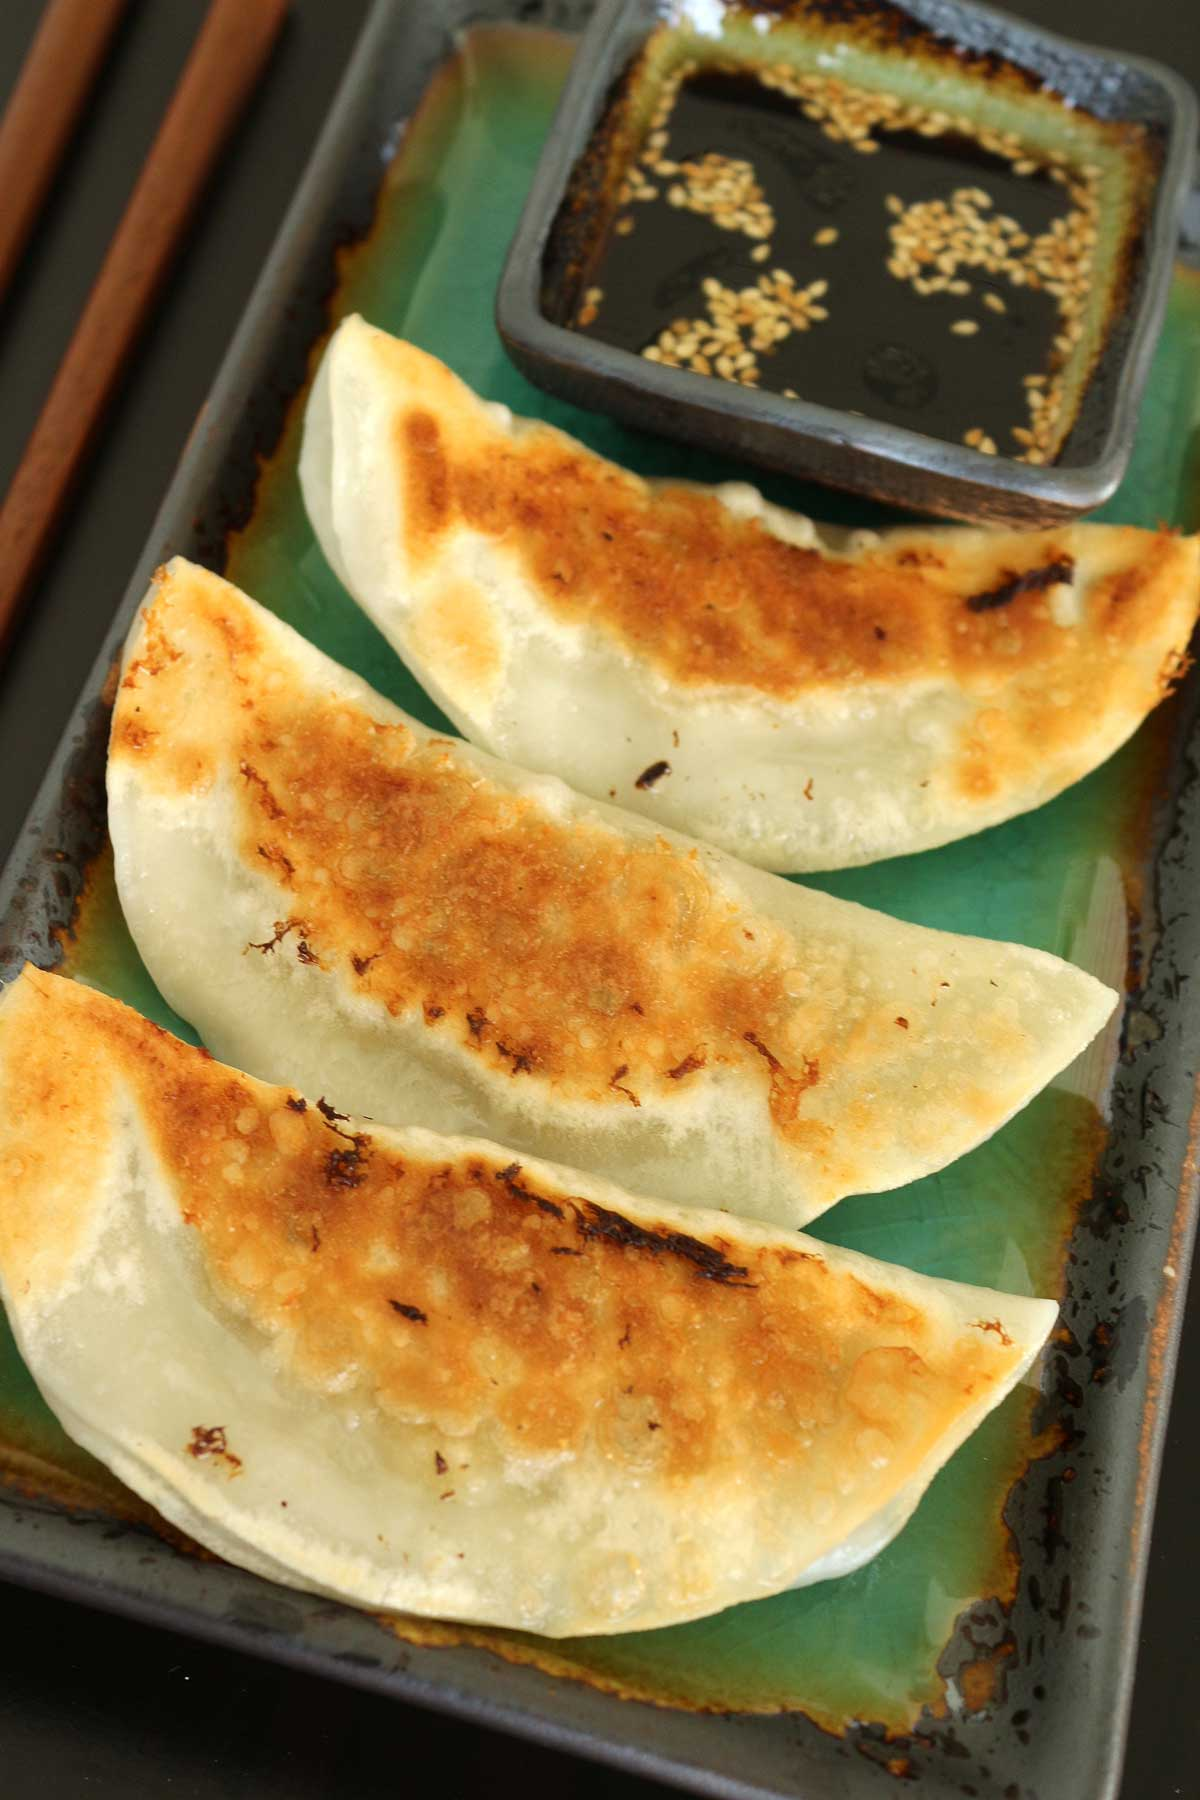 Closeup of 3 pan-fried dumplings on a plate with dipping sauce at the far end.